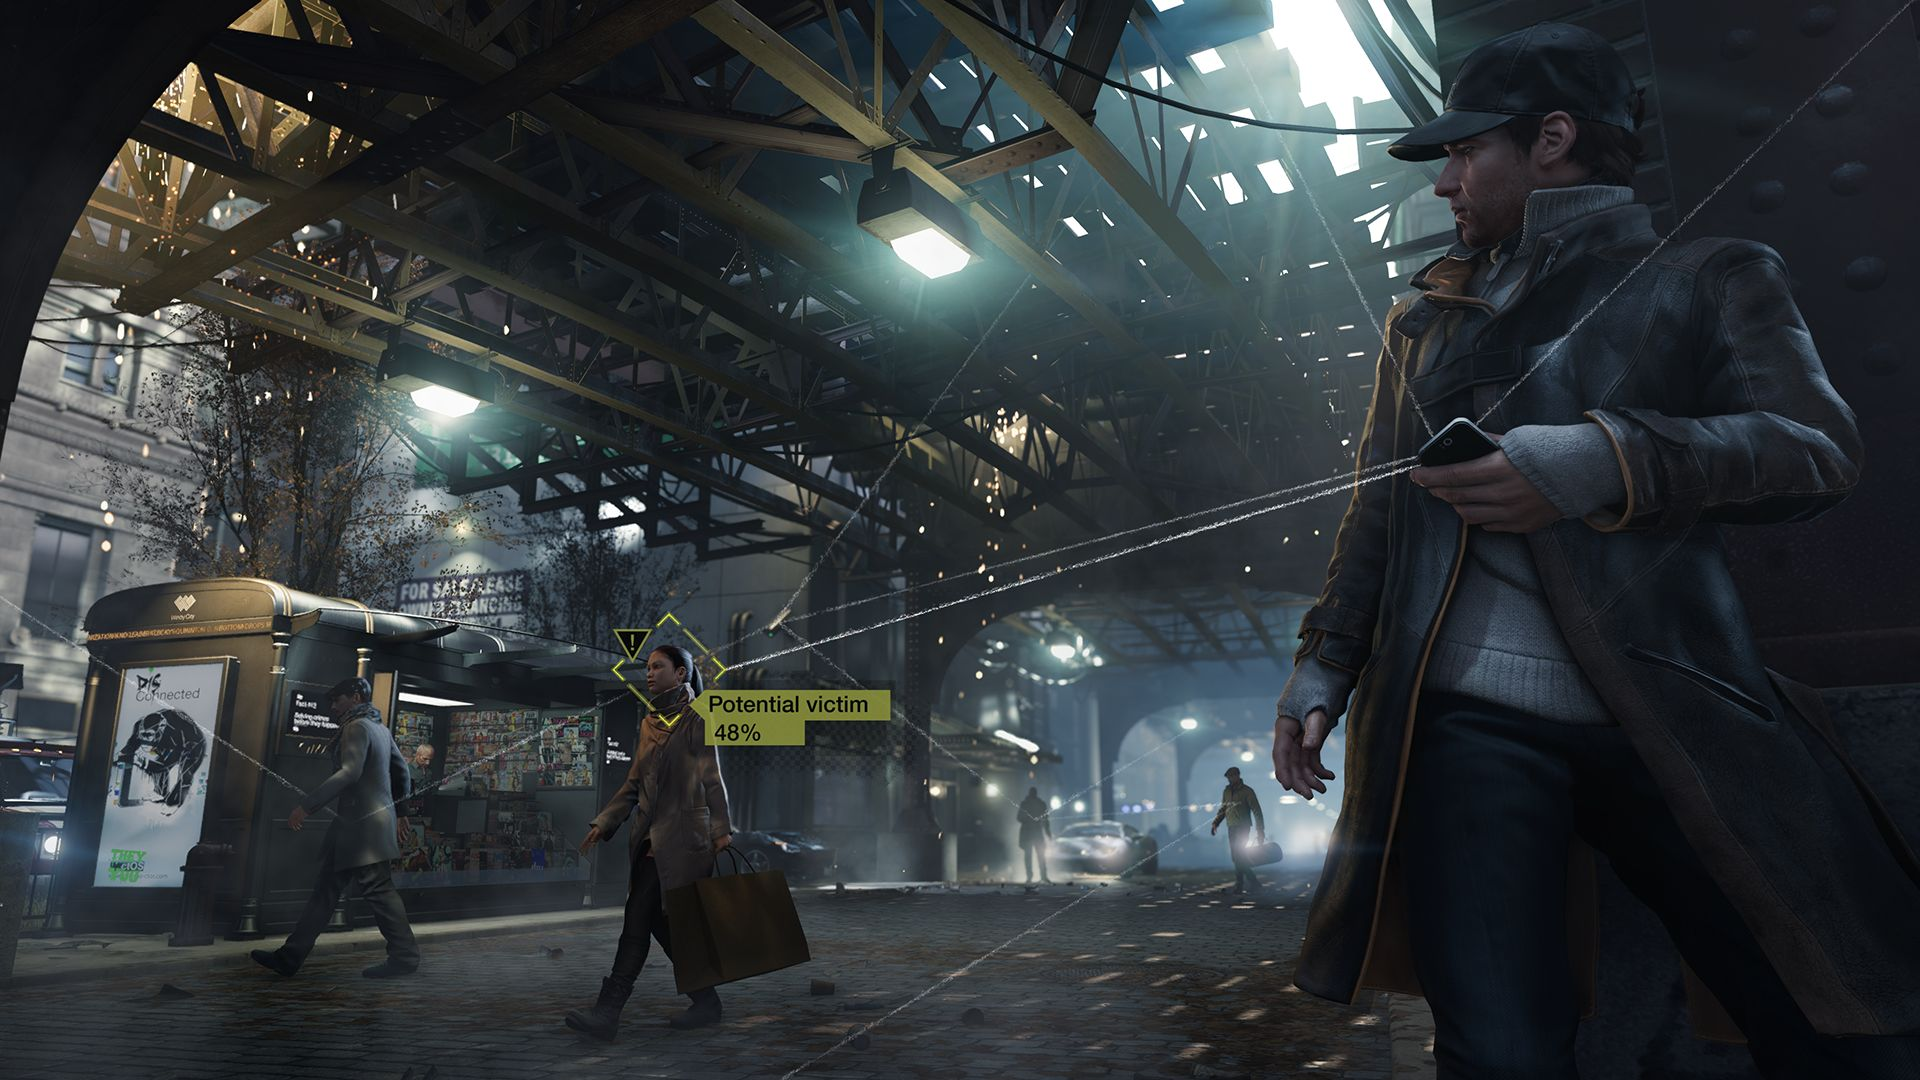 watch dogs A3